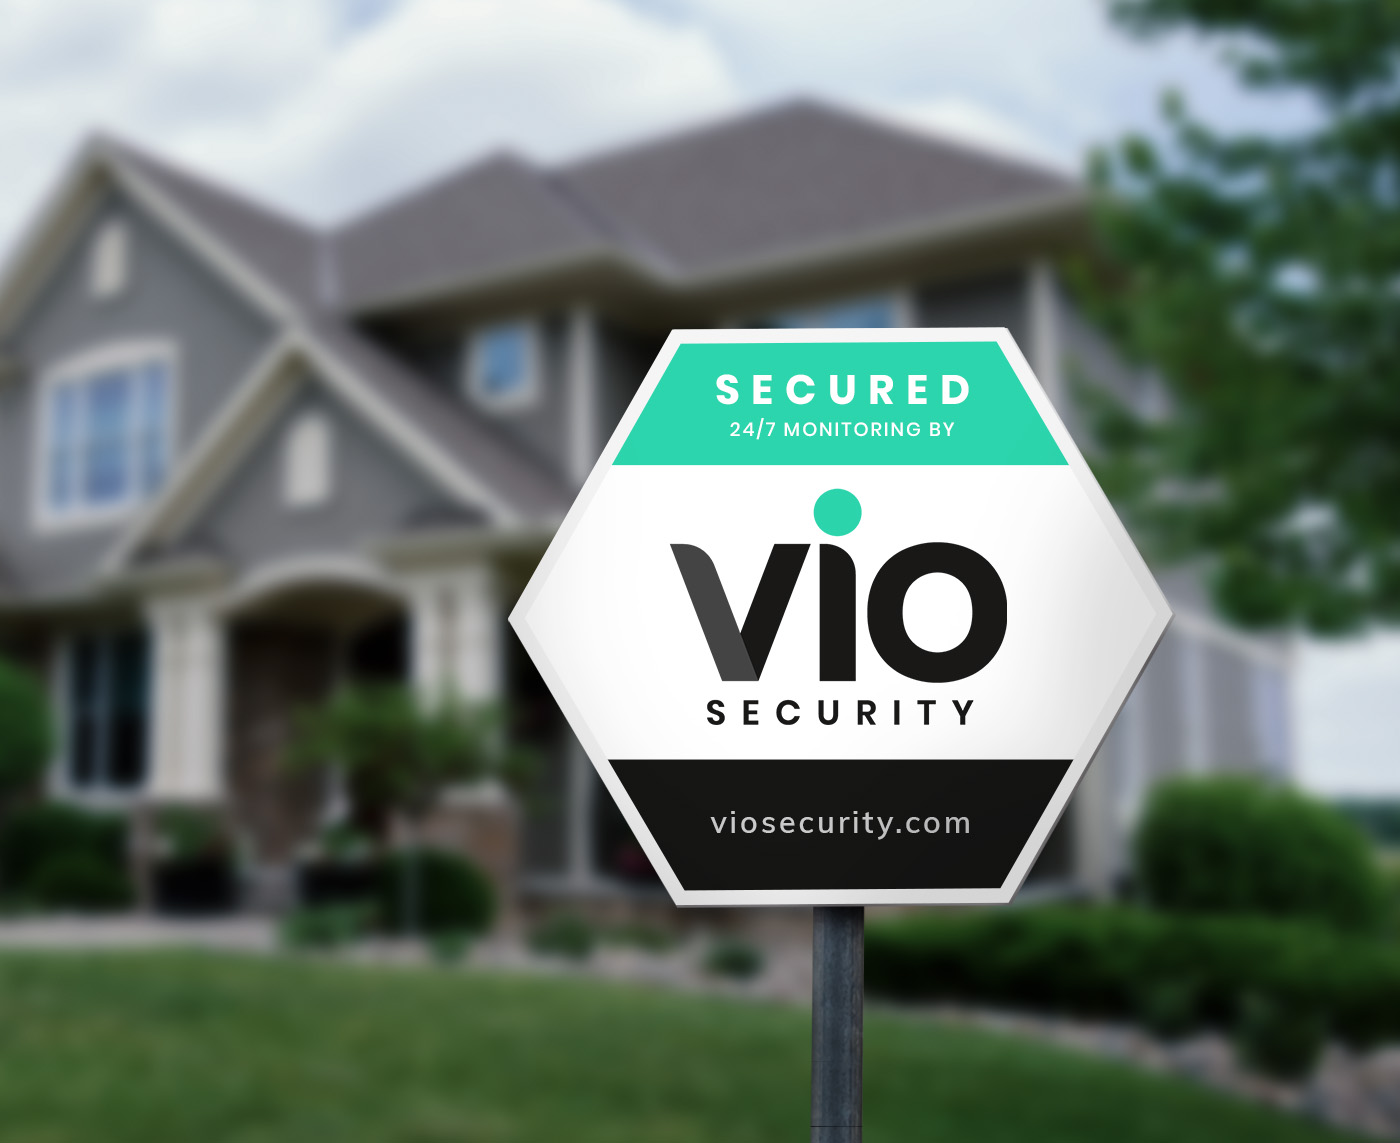 Vio Security sign in front yard of home